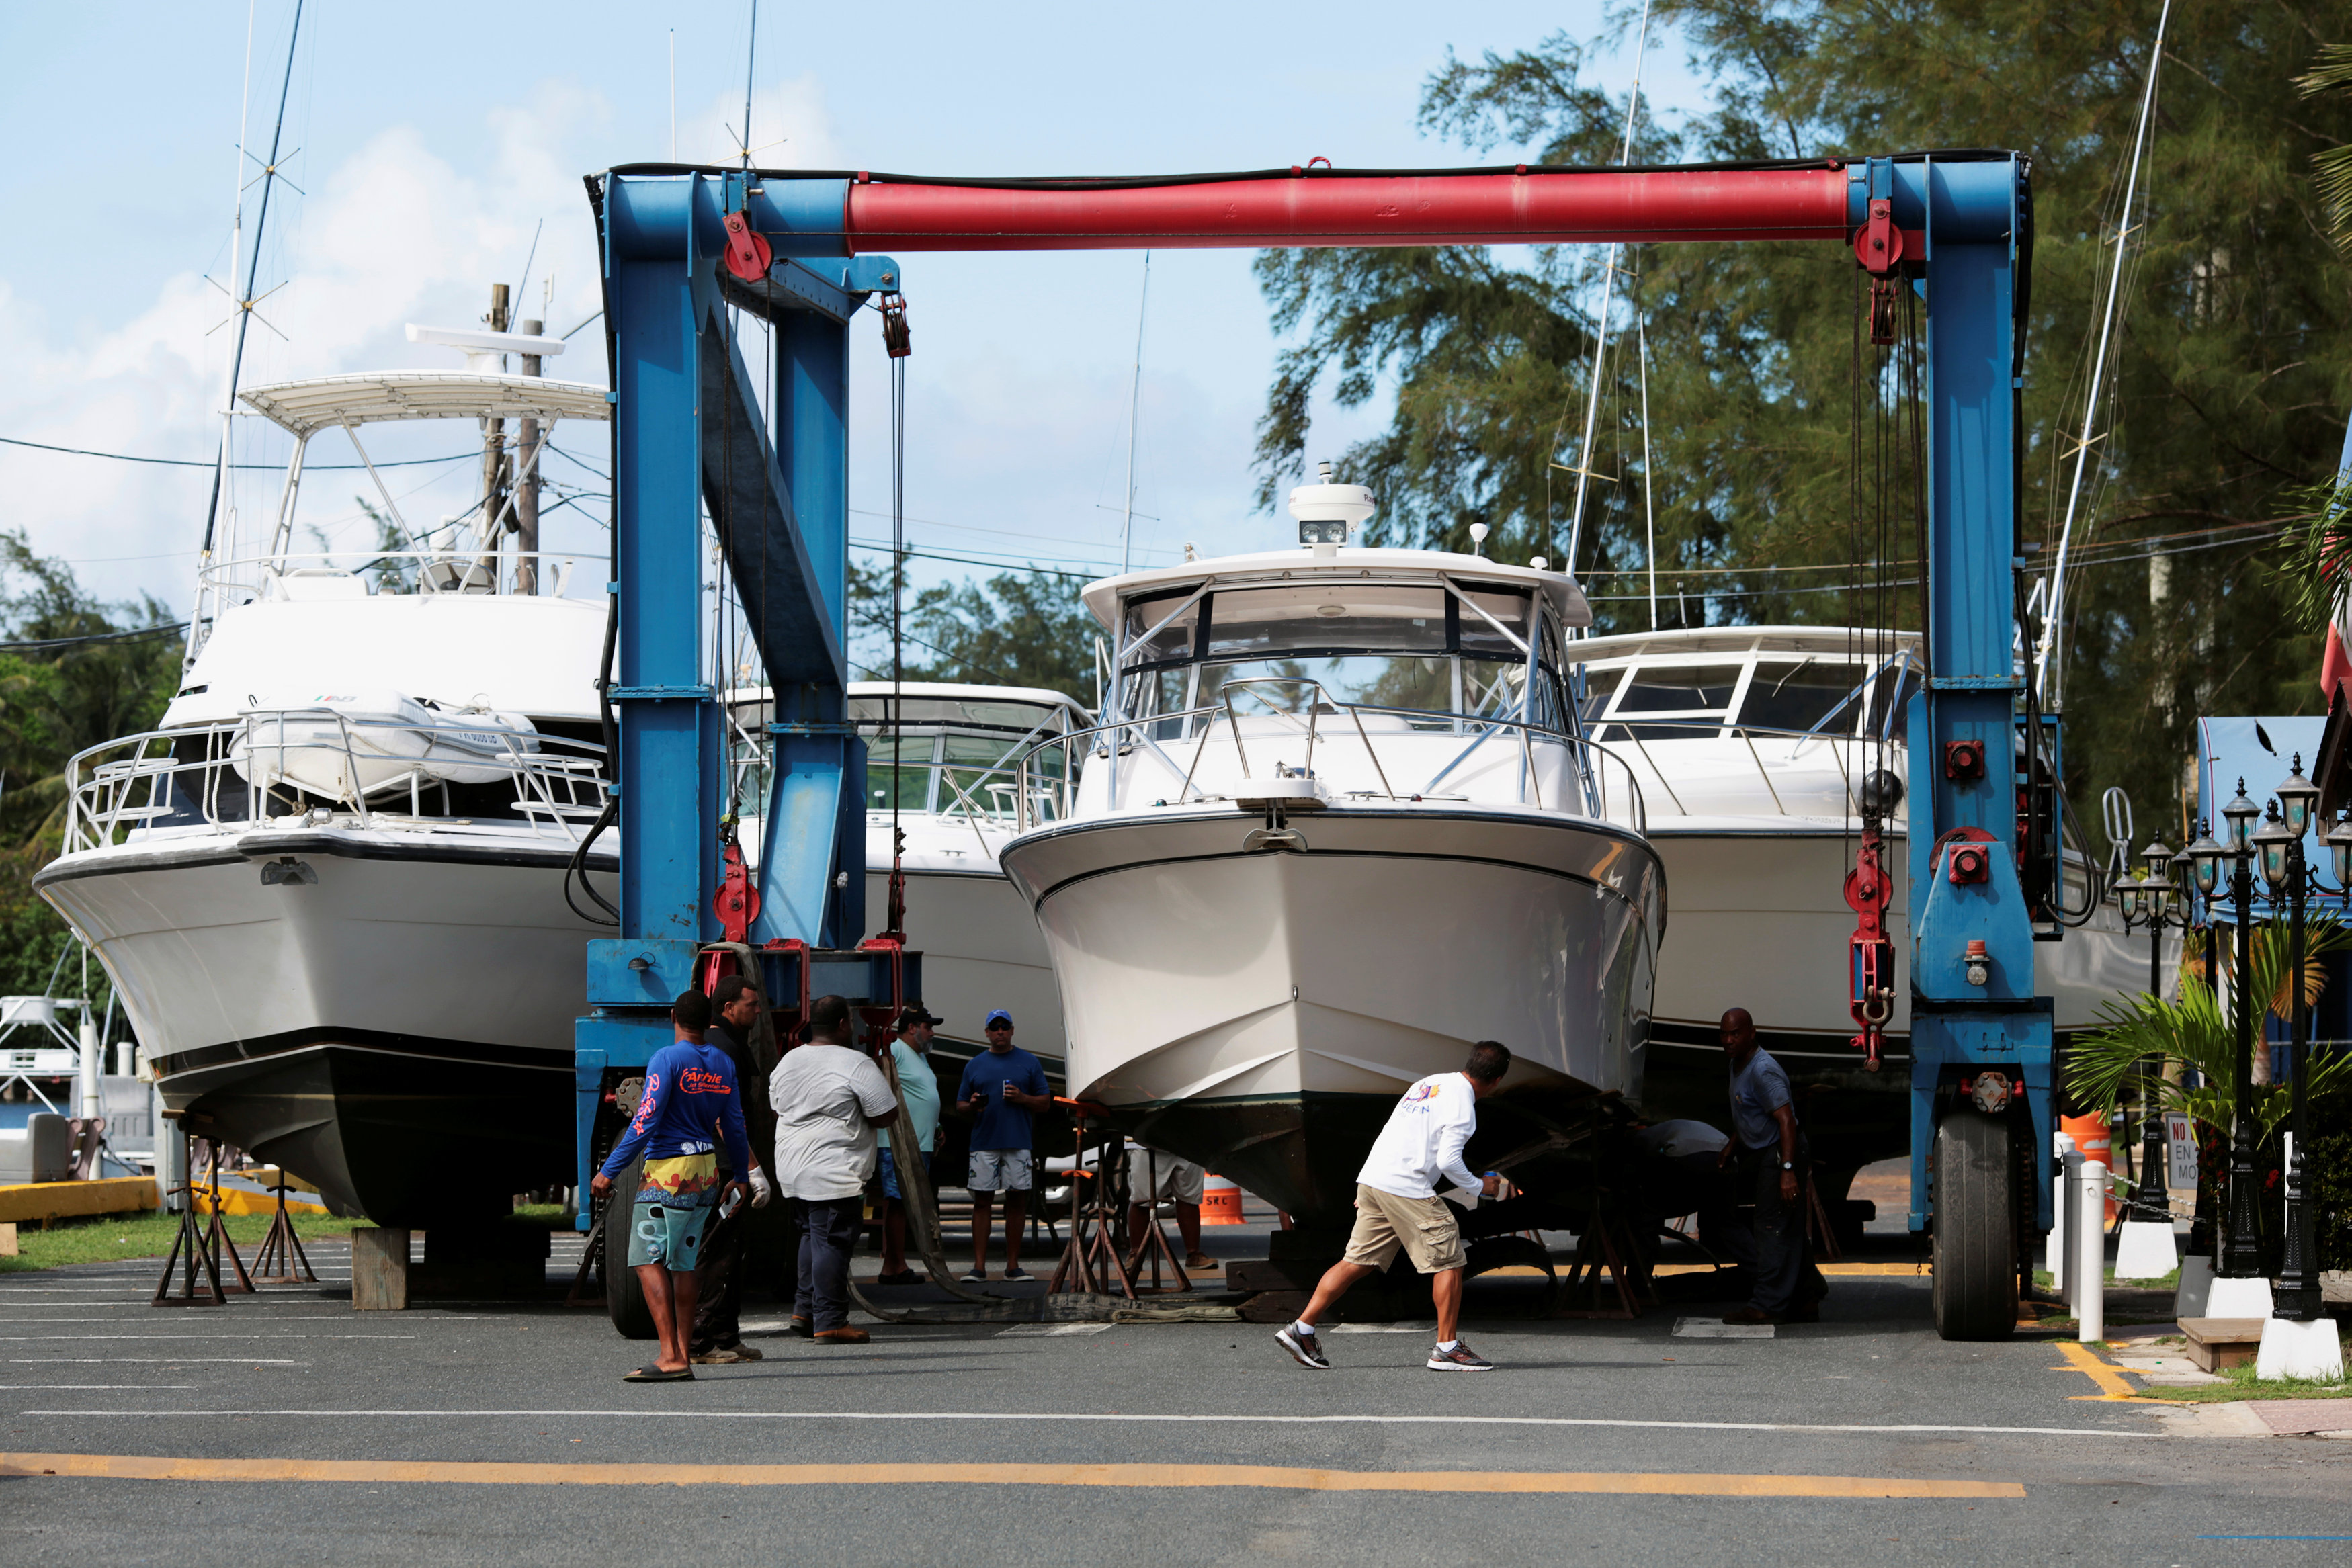 Workers put boats on dry docks in preparation, as Hurricane Irma, barreling towards the Caribbean and the southern United States, was upgraded to a Category 4 storm, in San Juan, Puerto Rico on Sept. 4, 2017. (REUTERS/Alvin Baez)